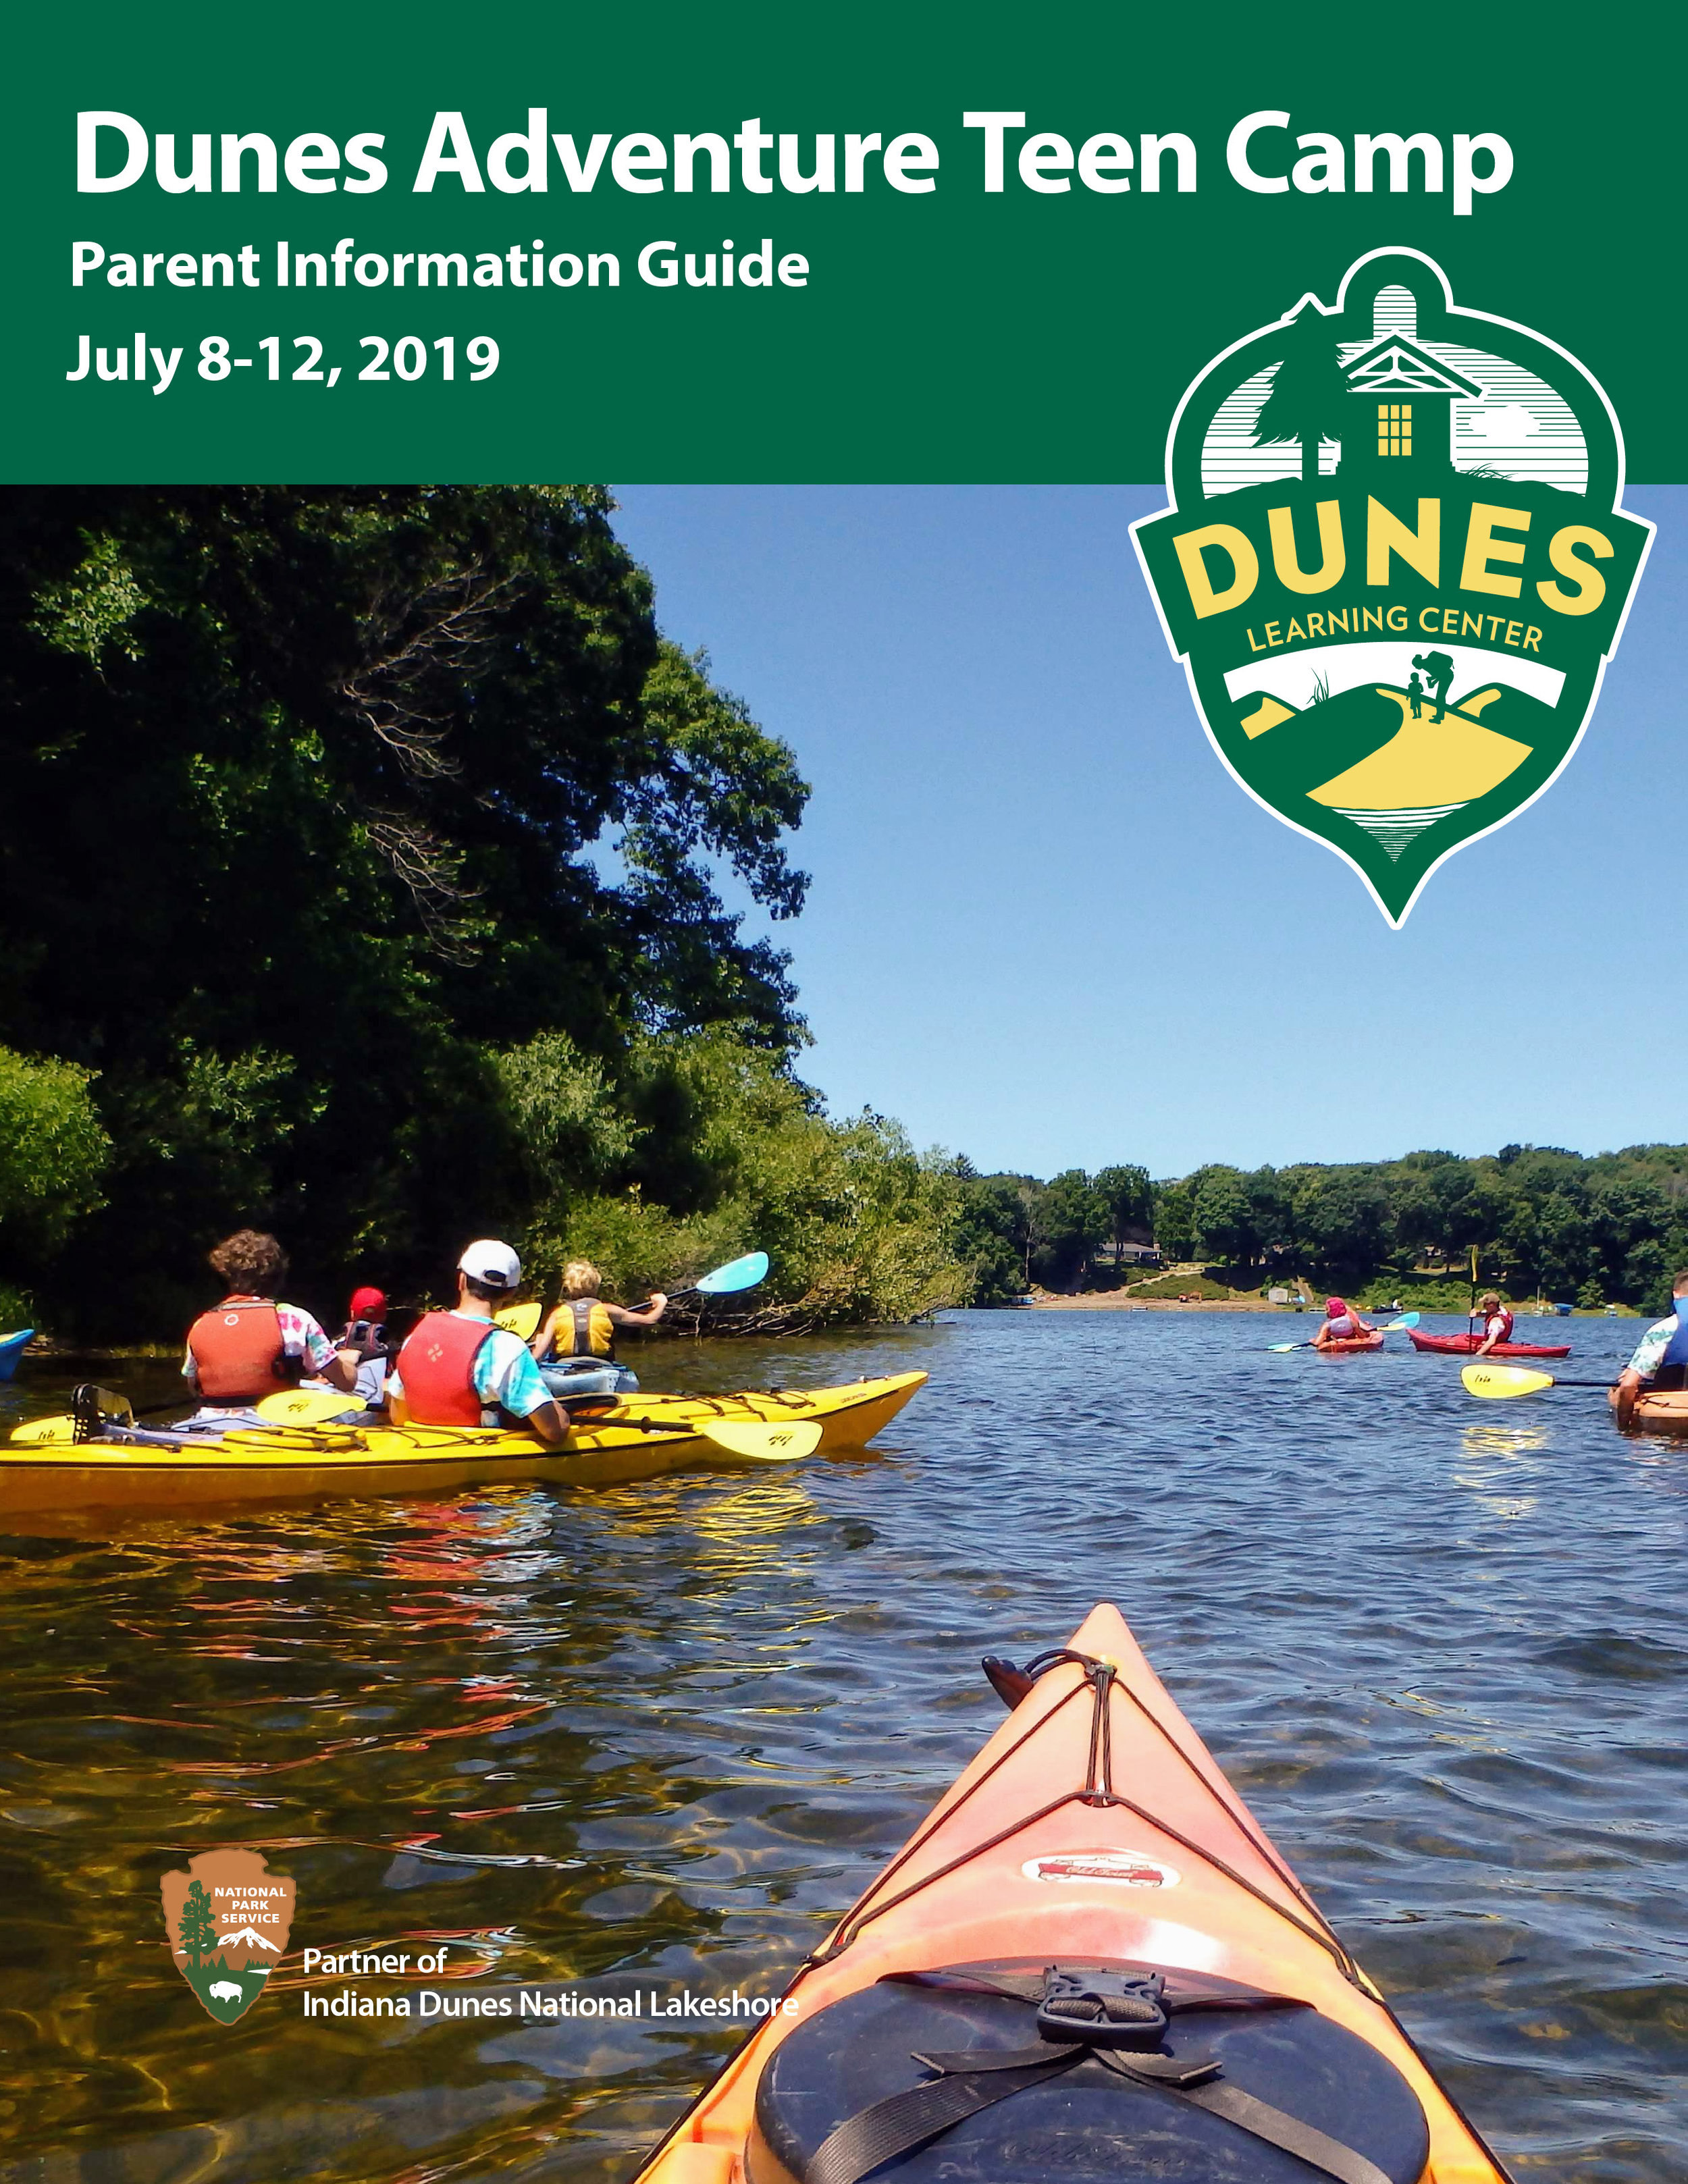 Dunes Adventure Teen Camp parent guide